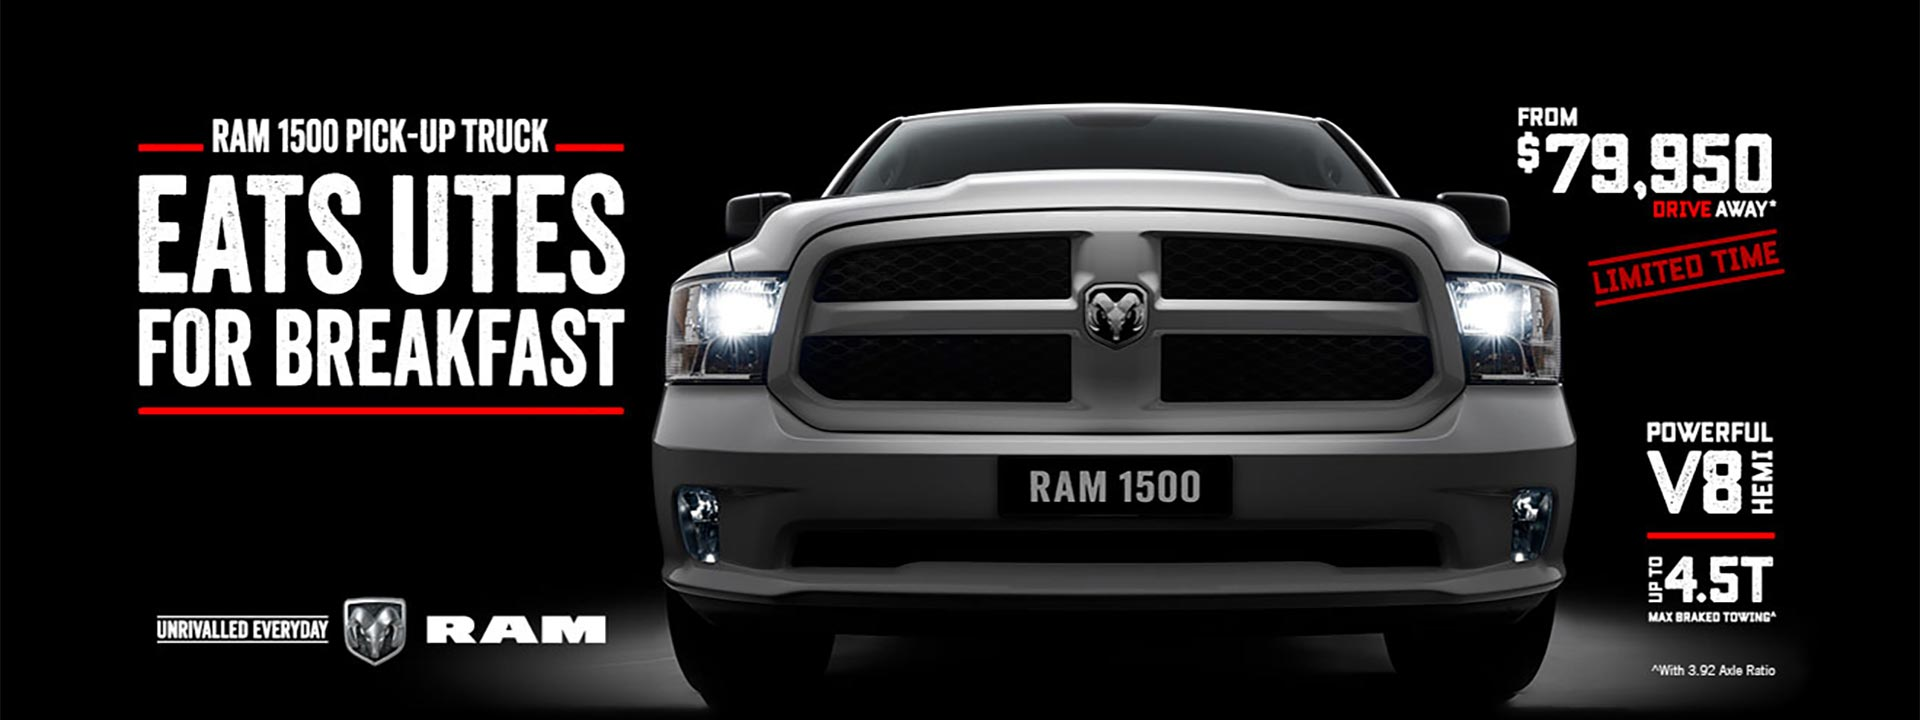 RAM 1500 Express Offer